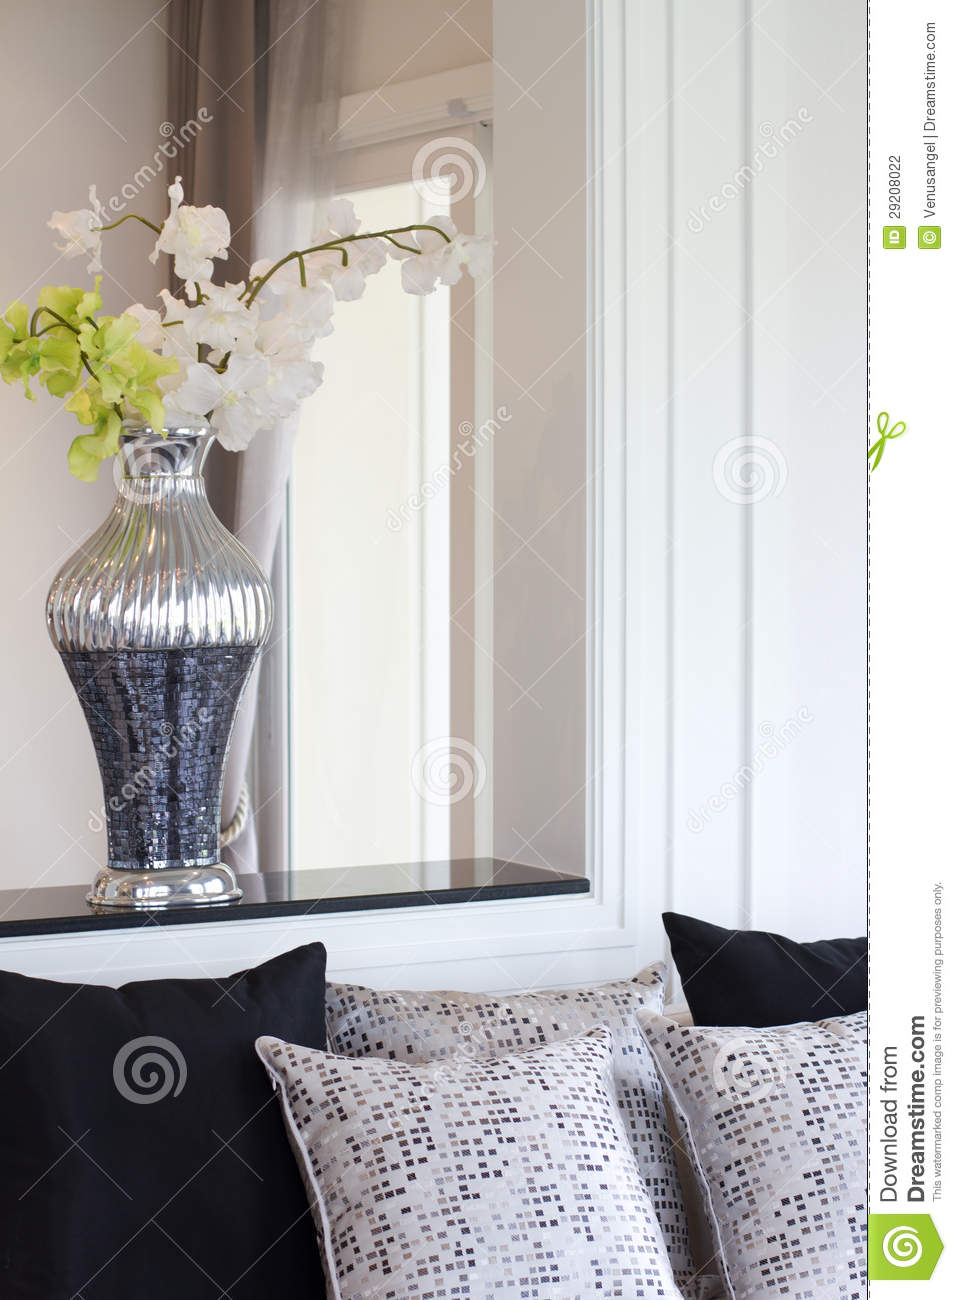 vase with artificial flowers in living room stock photography image 29208022. Black Bedroom Furniture Sets. Home Design Ideas